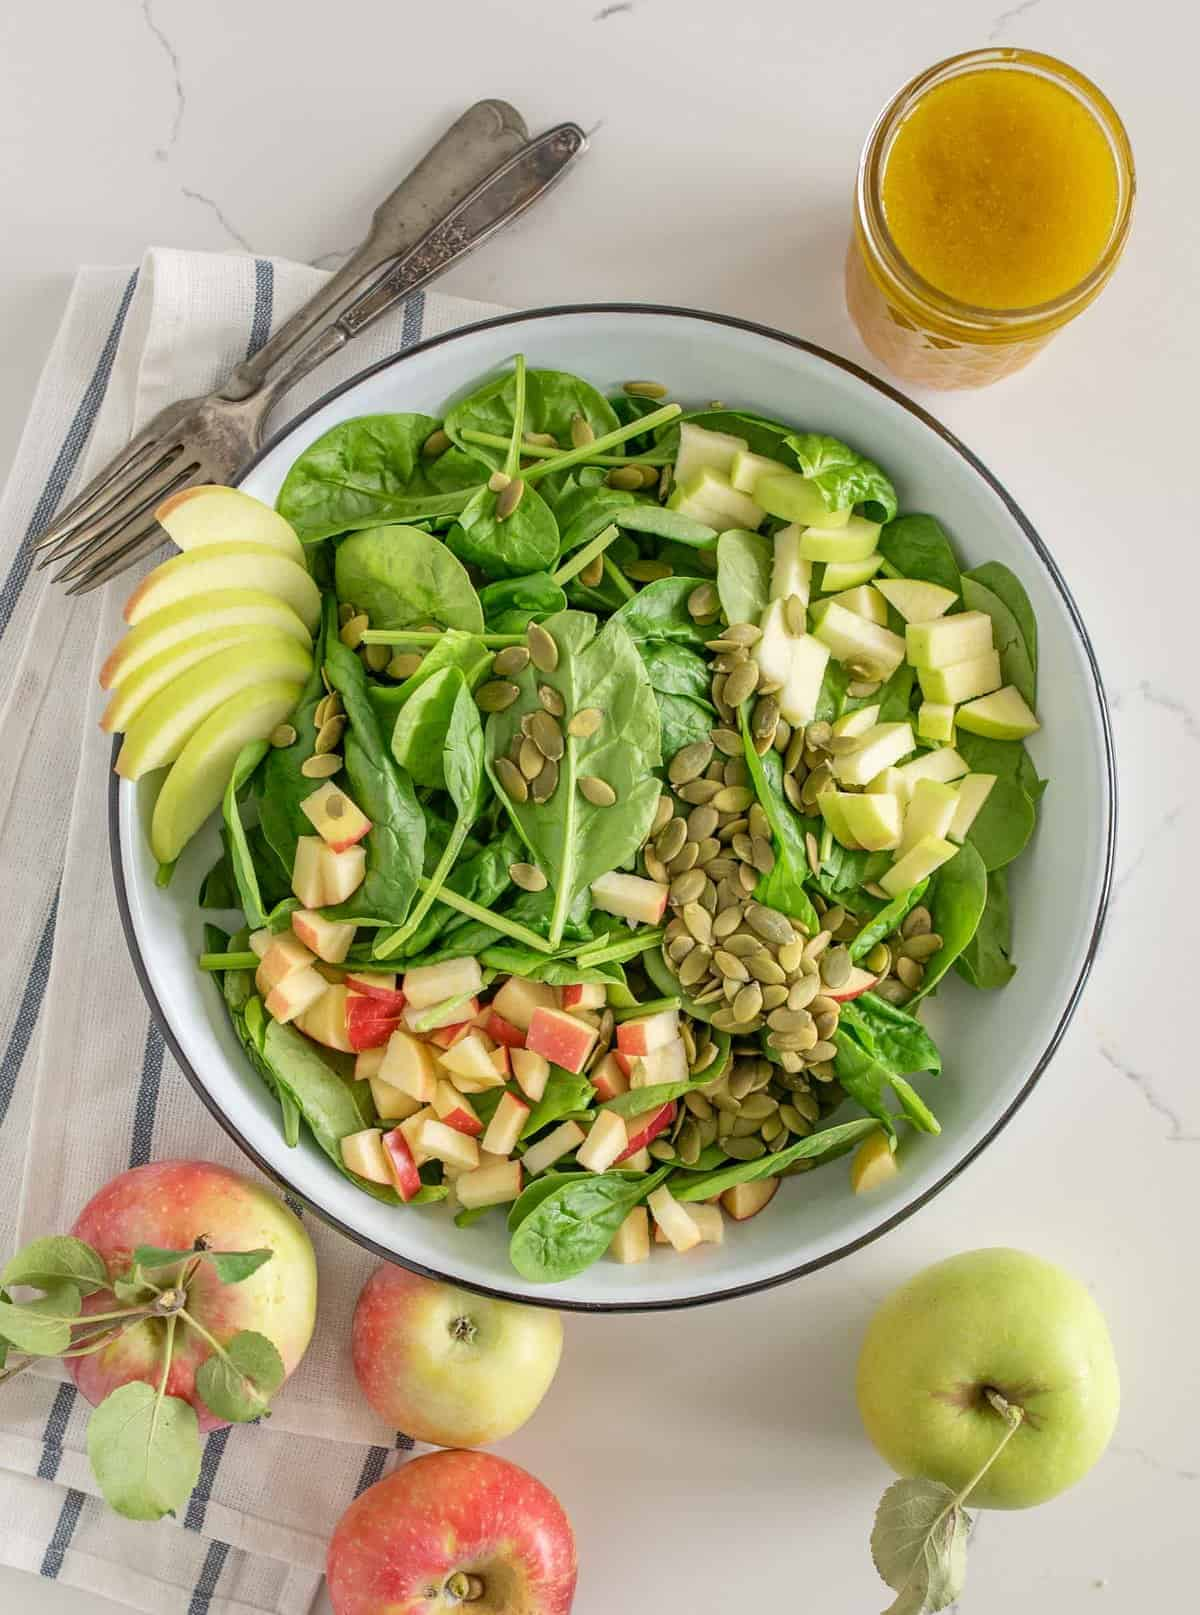 Bowl of spinach salad with apples and apple vinaigrette